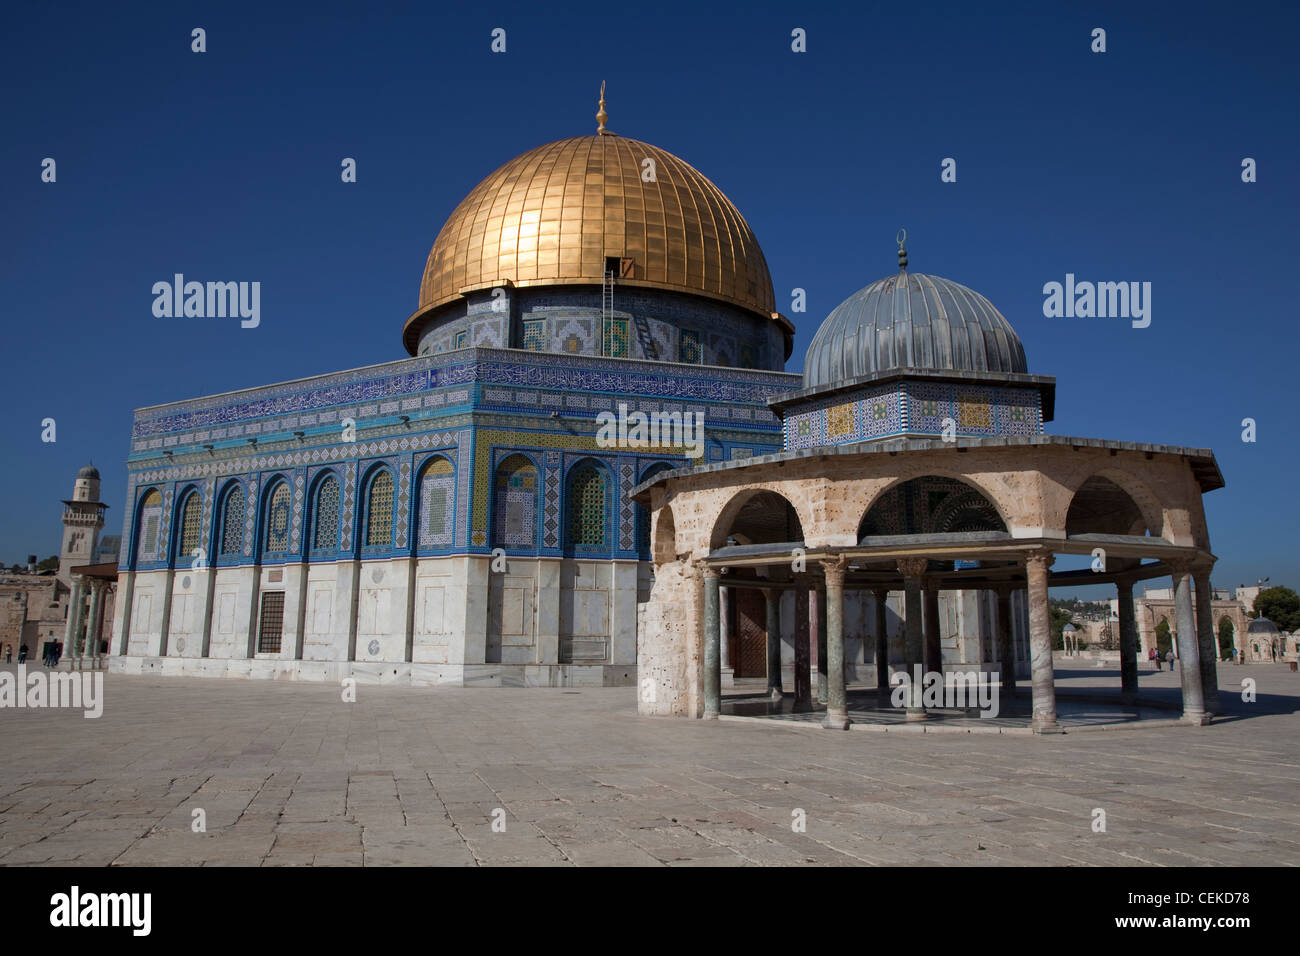 Dome Rock oldest Islamic monument standing Muslim shrine built sacred stone 'Foundation Stone' stone holiest - Stock Image